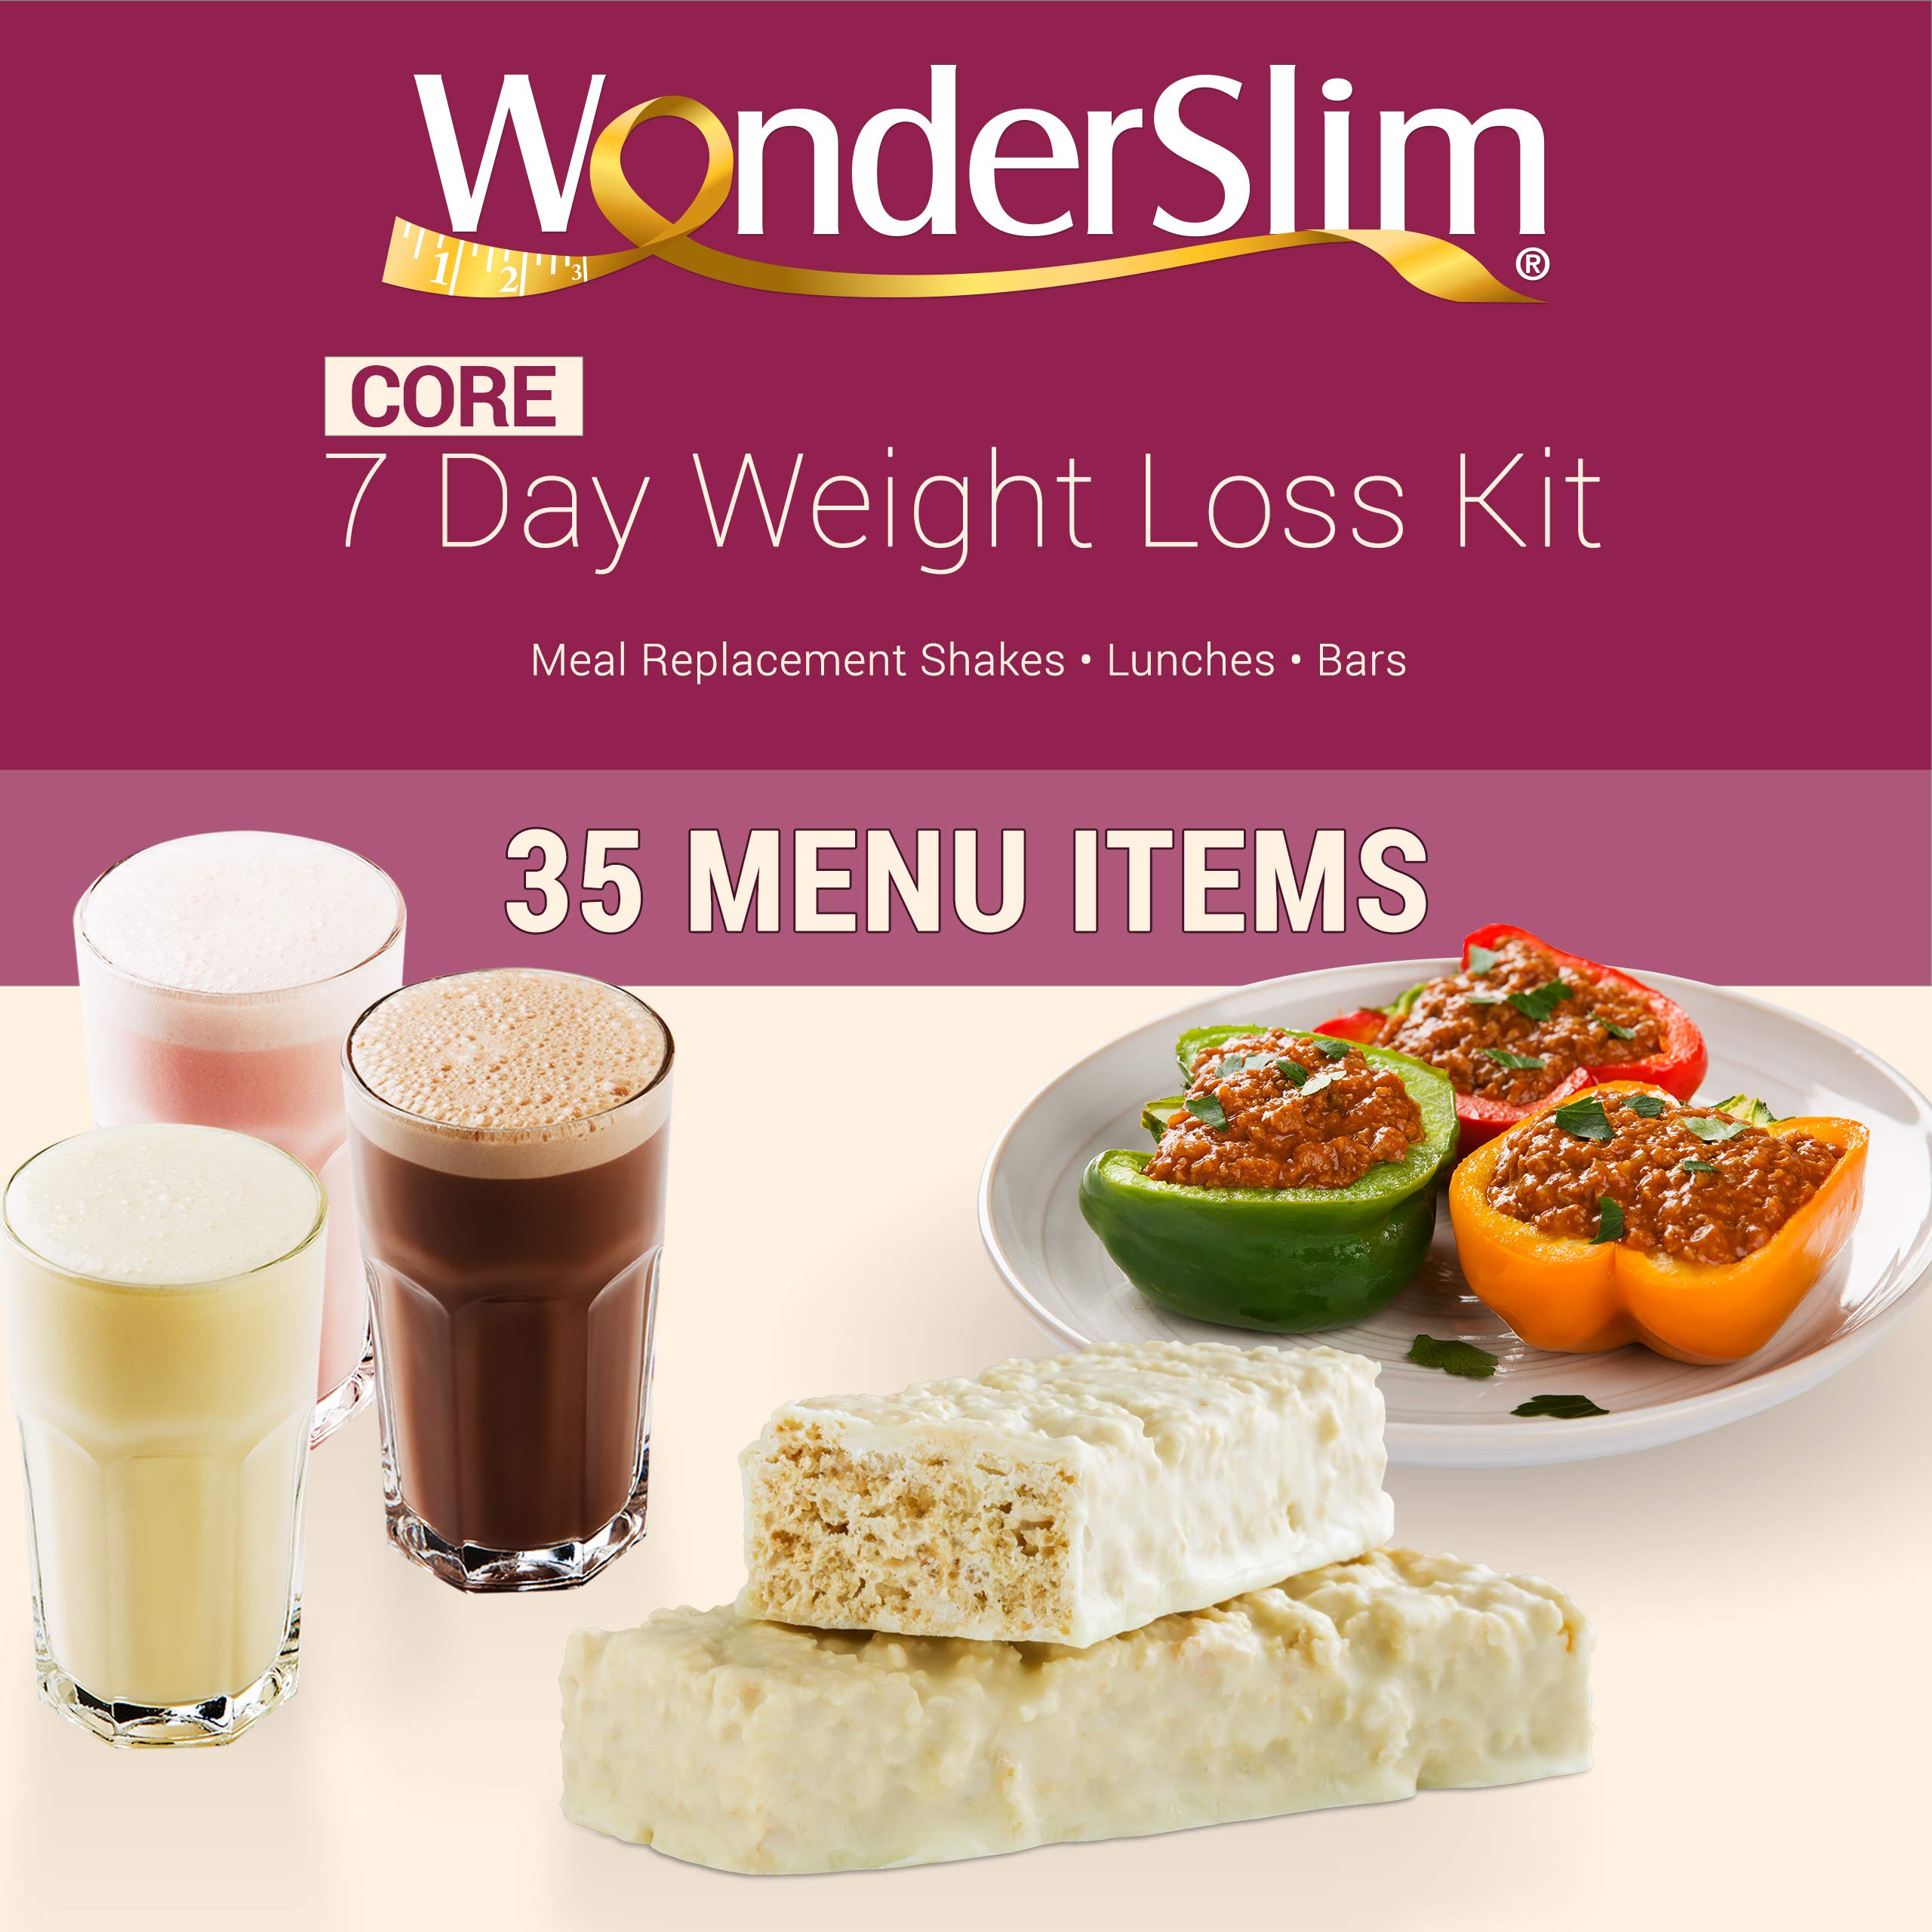 WonderSlim Core 1 Week Diet Kit - Complete Weight Loss Package - Meal Replacements, Protein Supplements, Snacks and Lifestyle Guide by WonderSlim (Image #1)